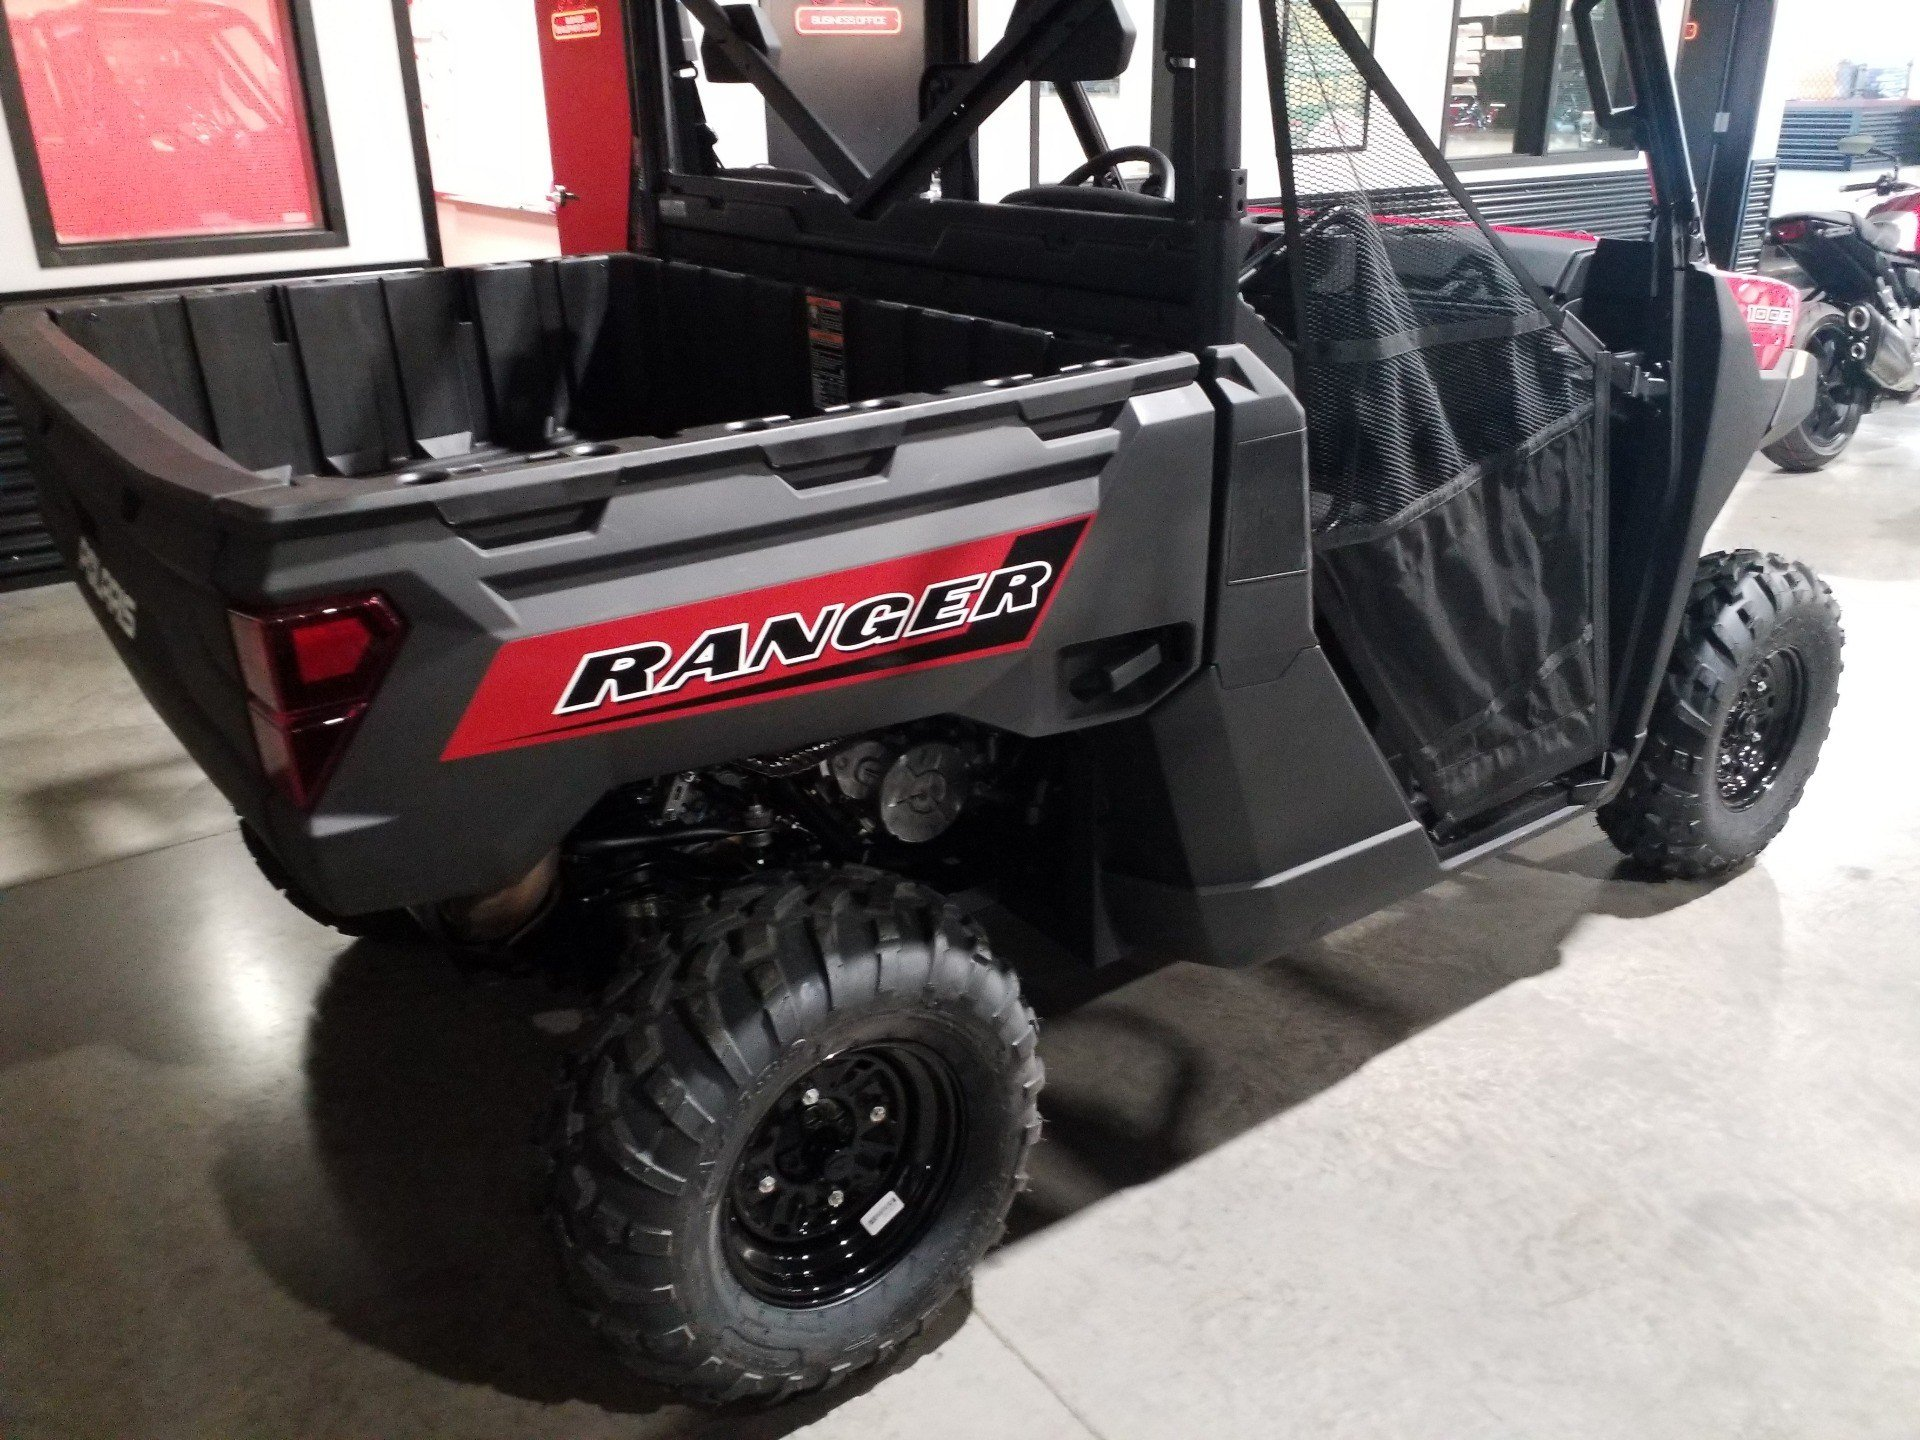 2020 Polaris Ranger 1000 EPS in Cedar Rapids, Iowa - Photo 4